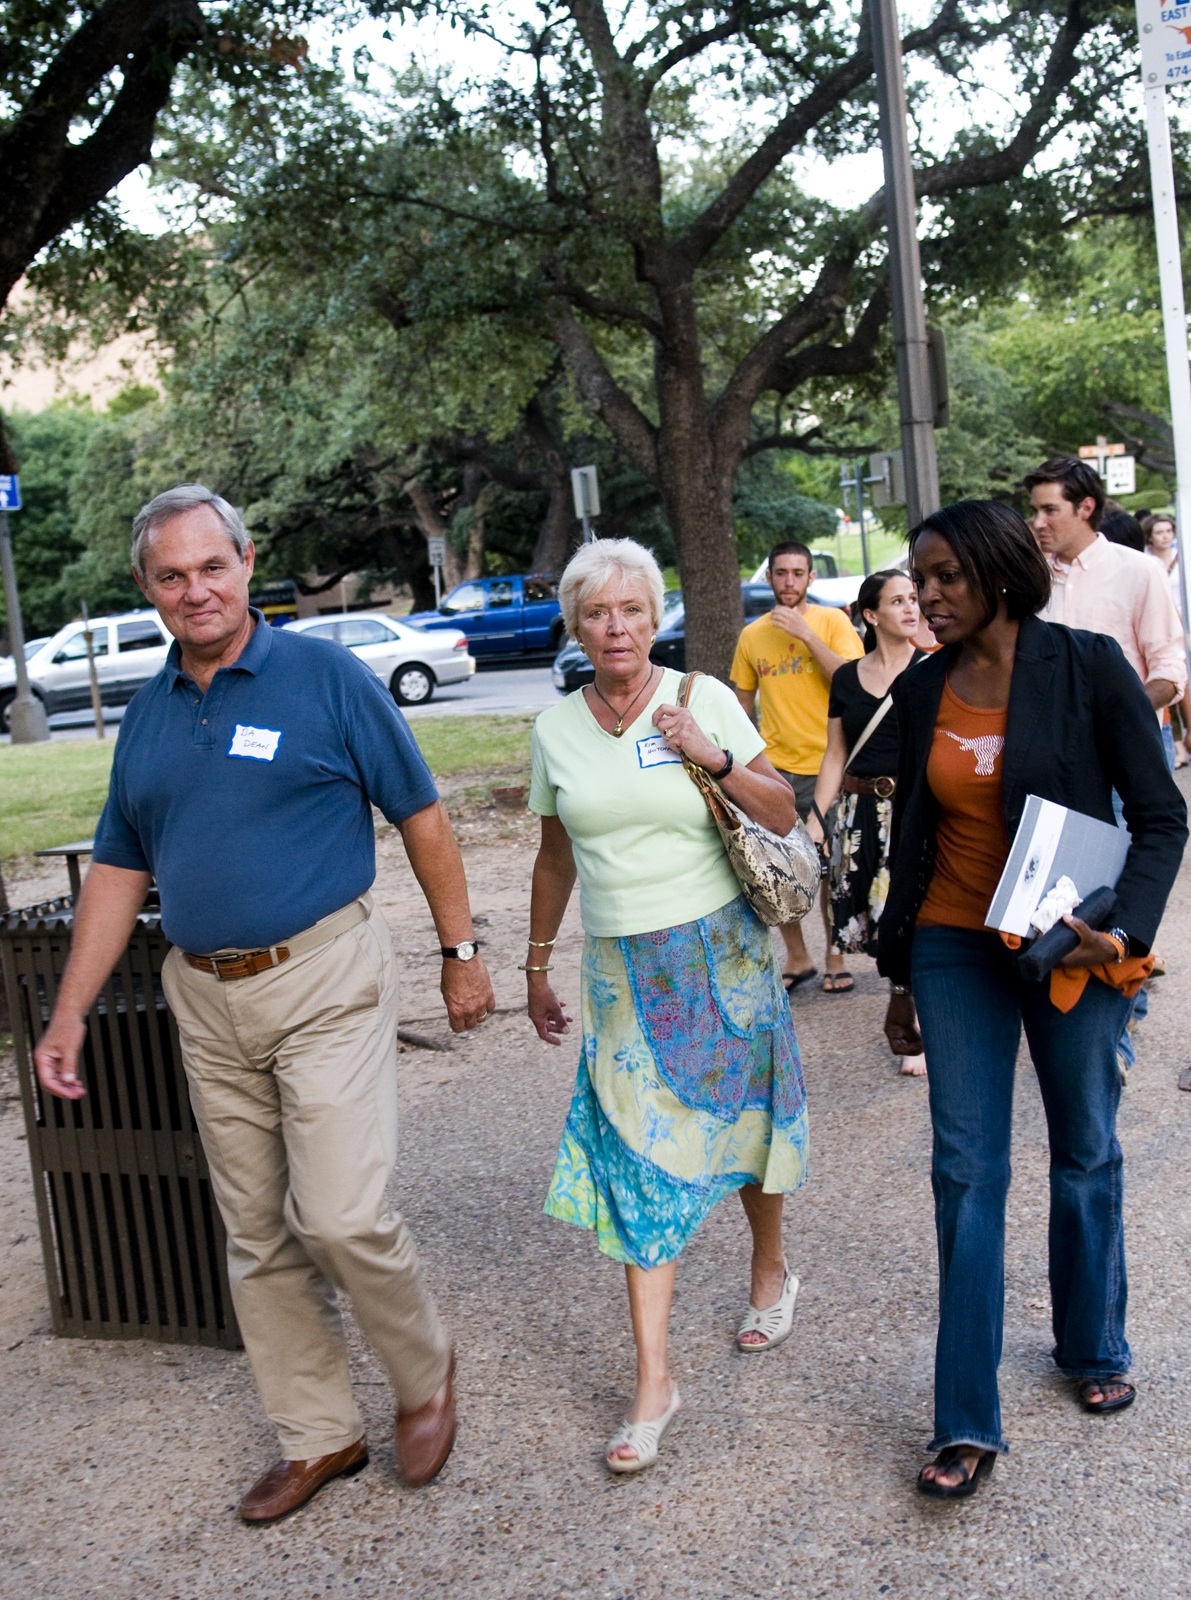 Mr. and Mrs. Hutchings lead the march to the UT Tower.